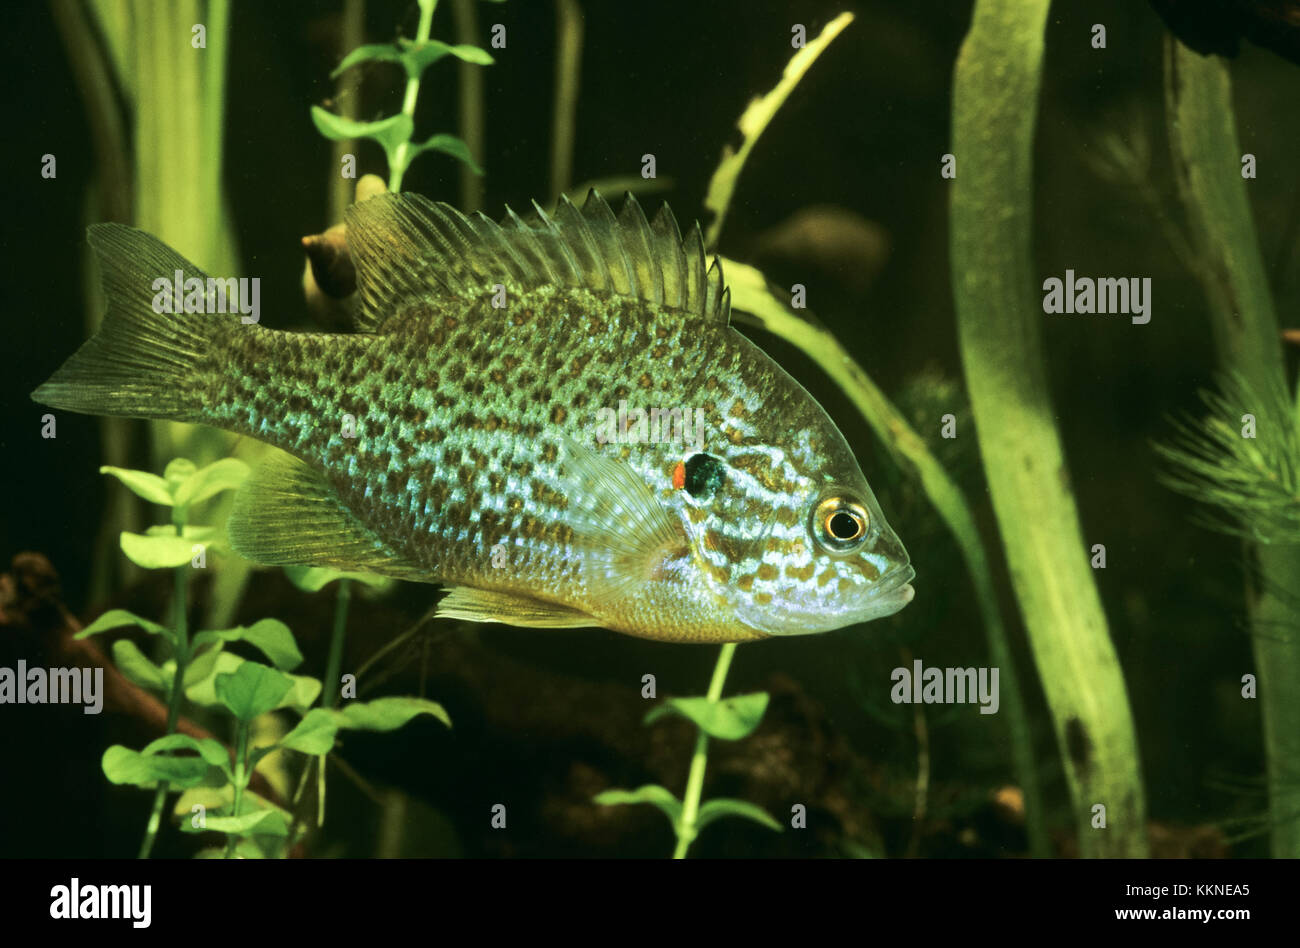 Sonnenbarsch, Sonnen-Barsch, Kürbiskernbarsch, Lepomis gibbosus, pumpkinseed sunfish, pumpkinseed-sunfish Stock Photo